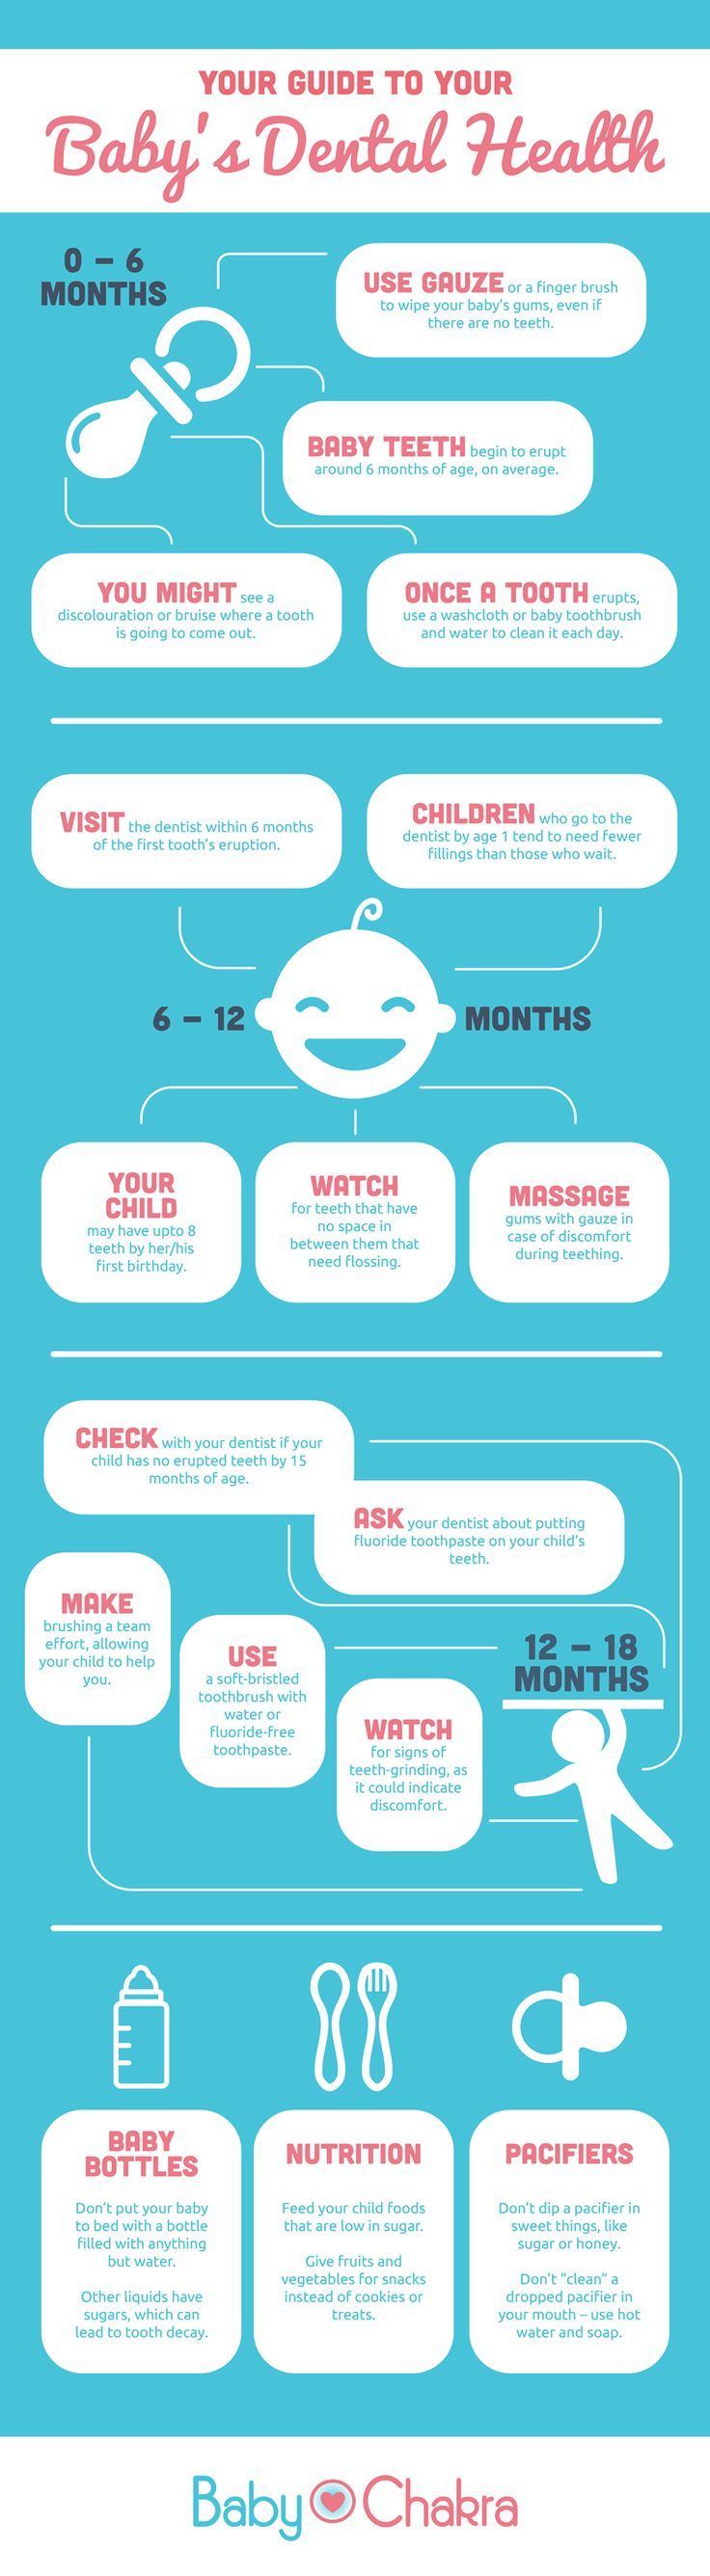 Baby's Dental Health InfoGraphic